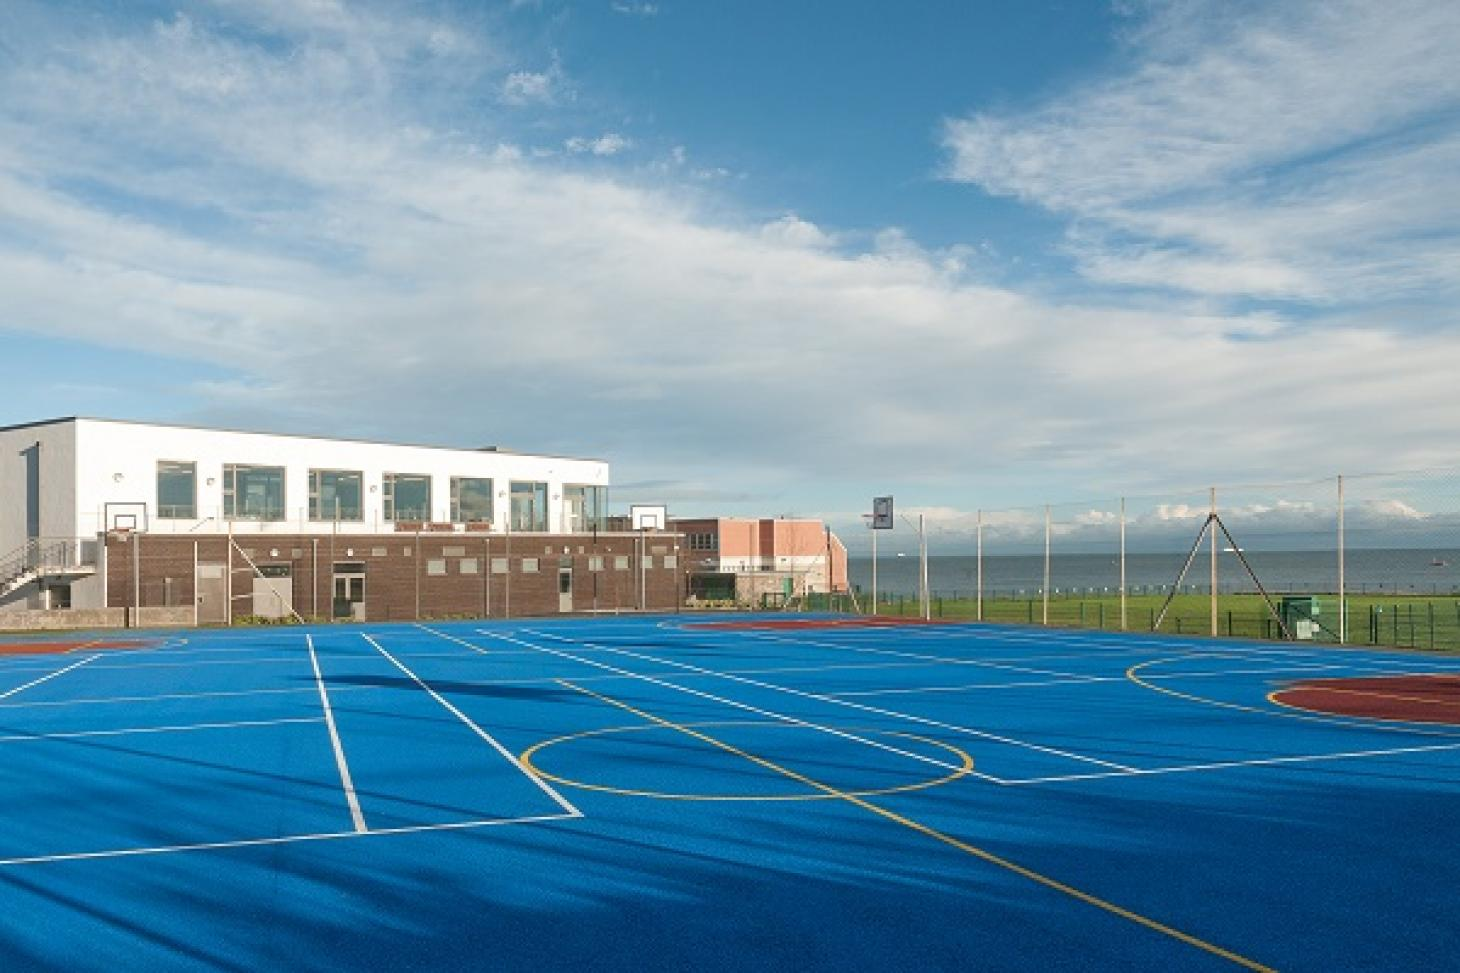 Loreto Abbey Sports Hall Outdoor | Hard (macadam) basketball court